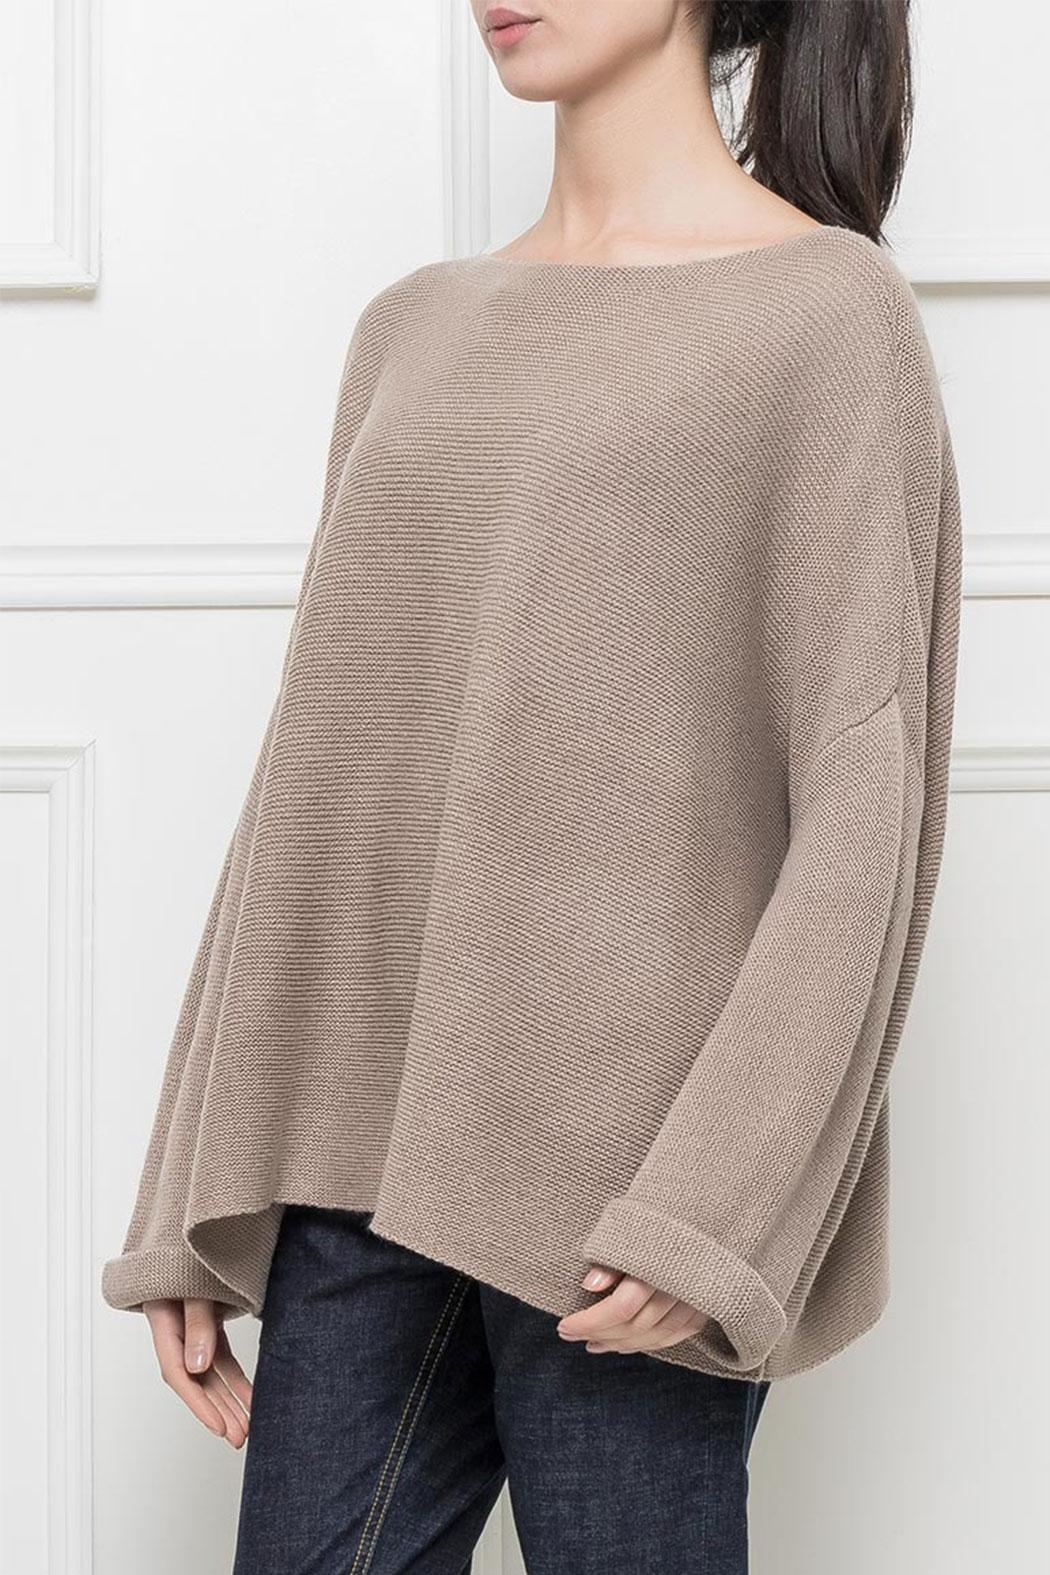 RYUJEE Placide Oversize Sweater - Side Cropped Image